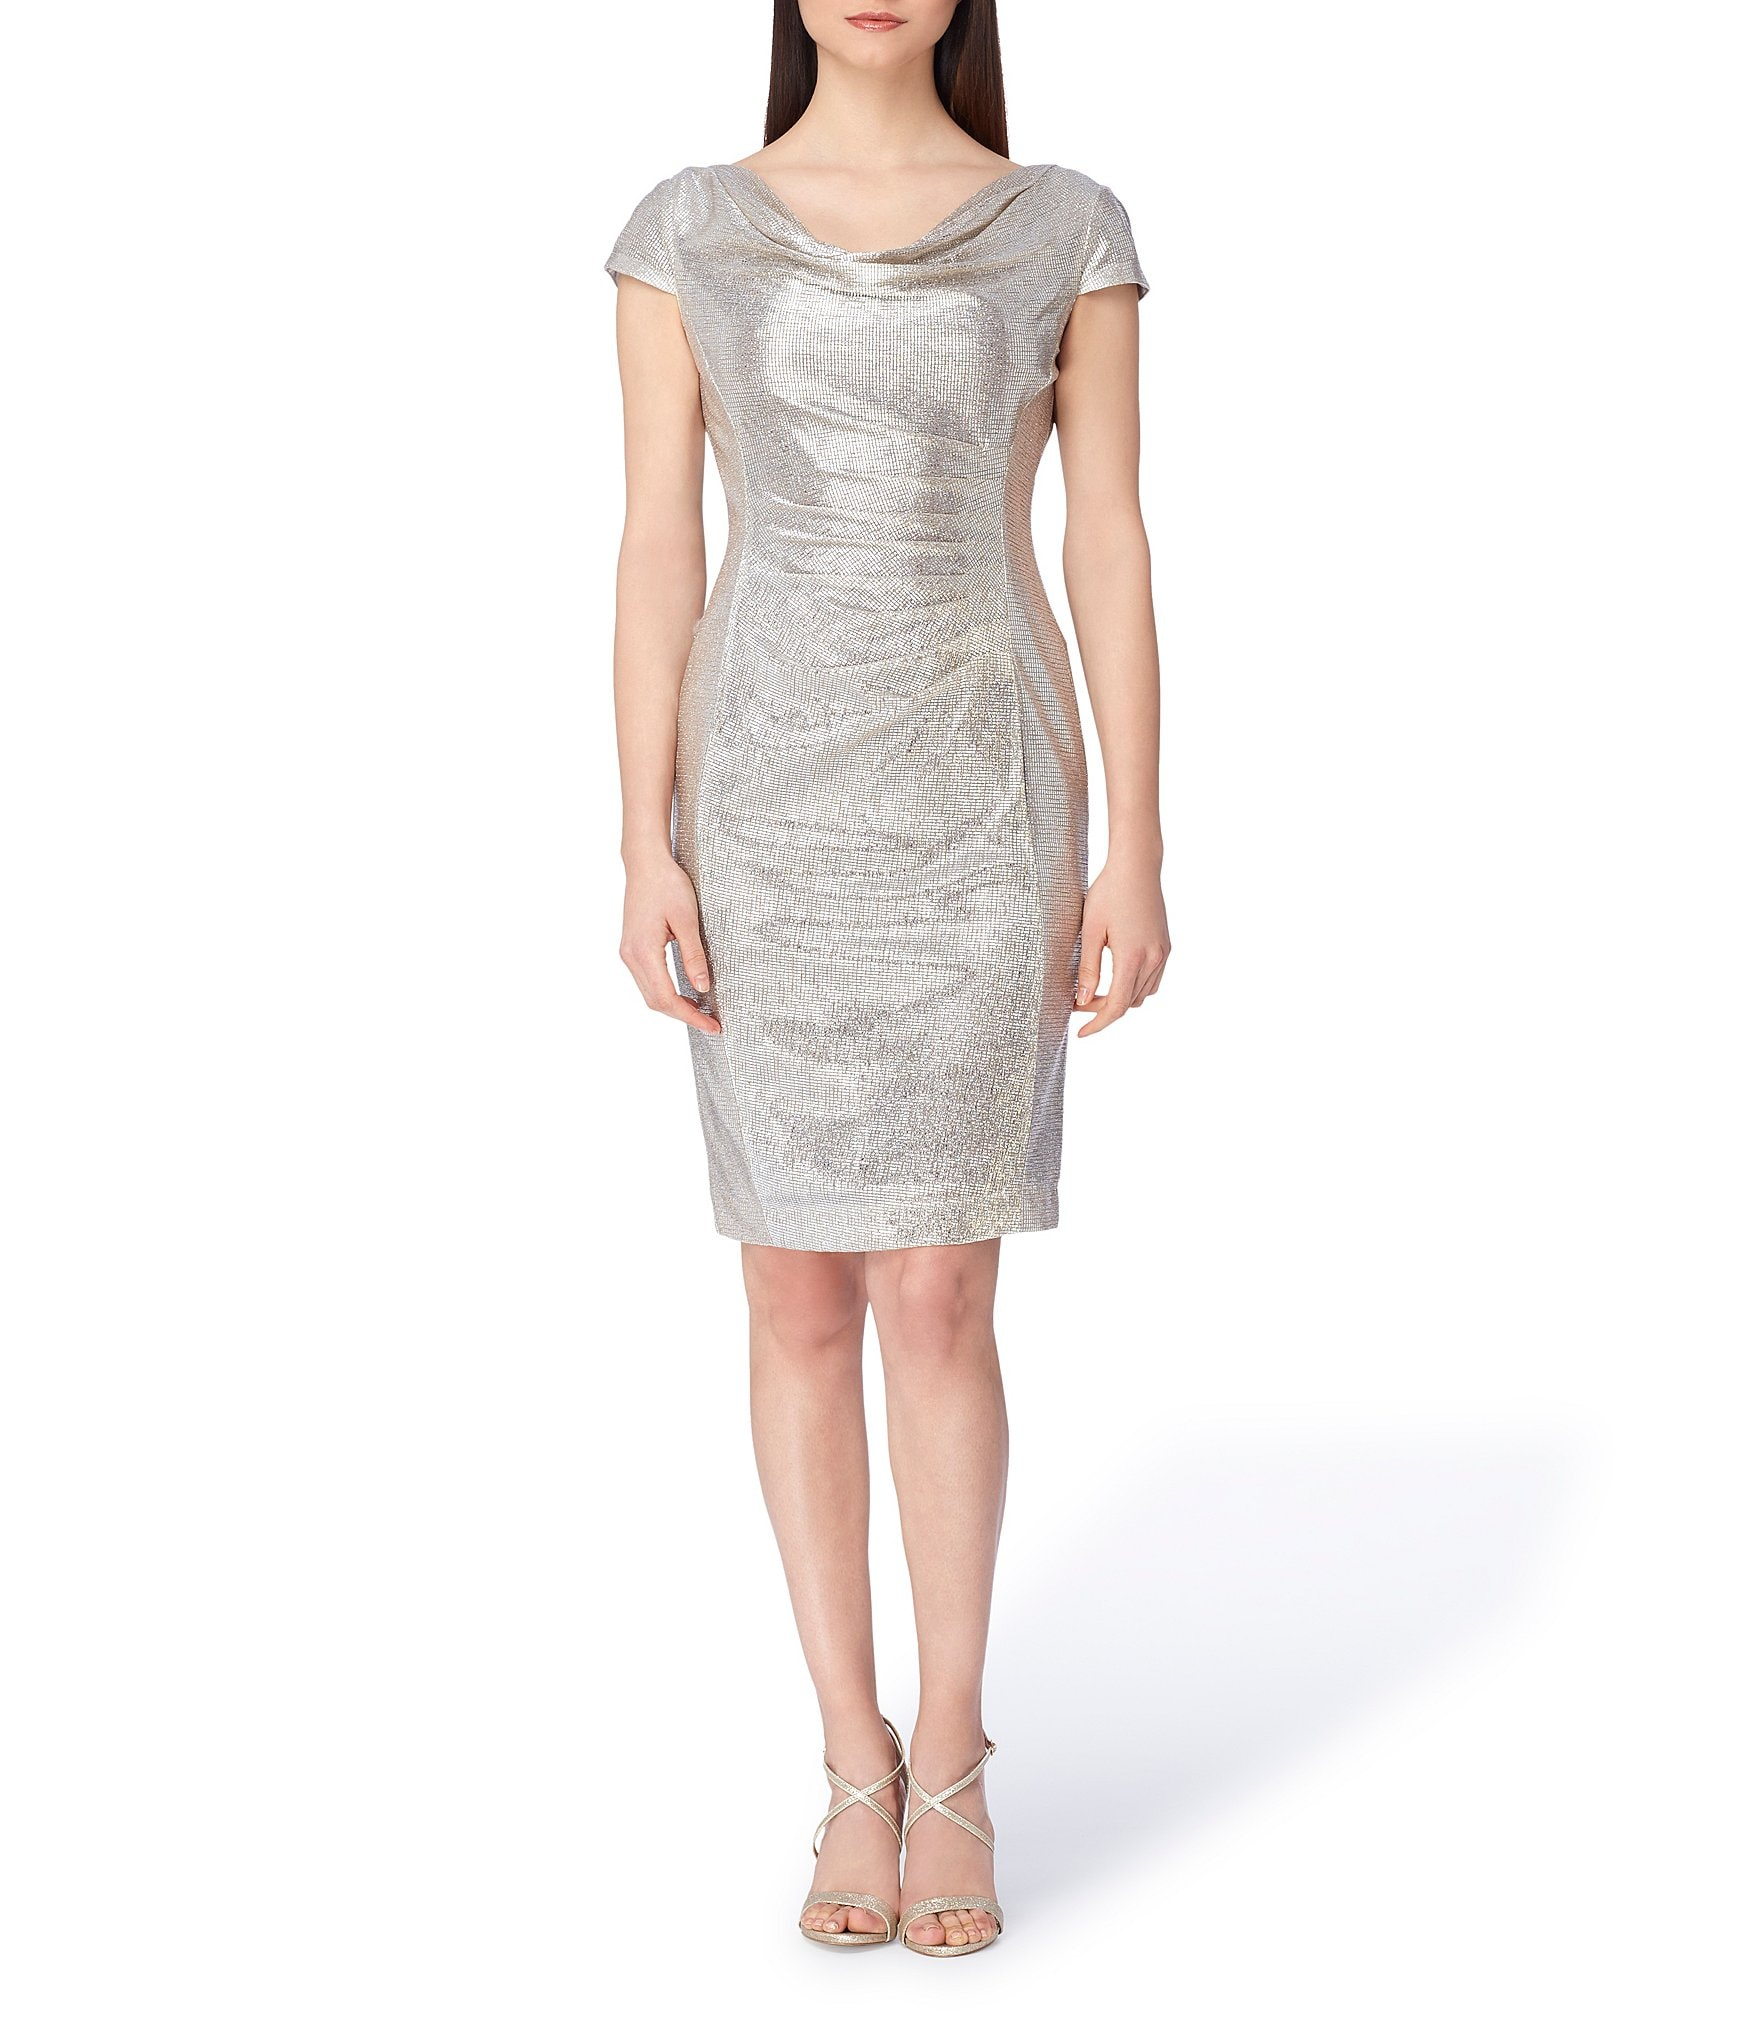 fcdd4073 Grey Women's Dresses & Gowns | Dillard's